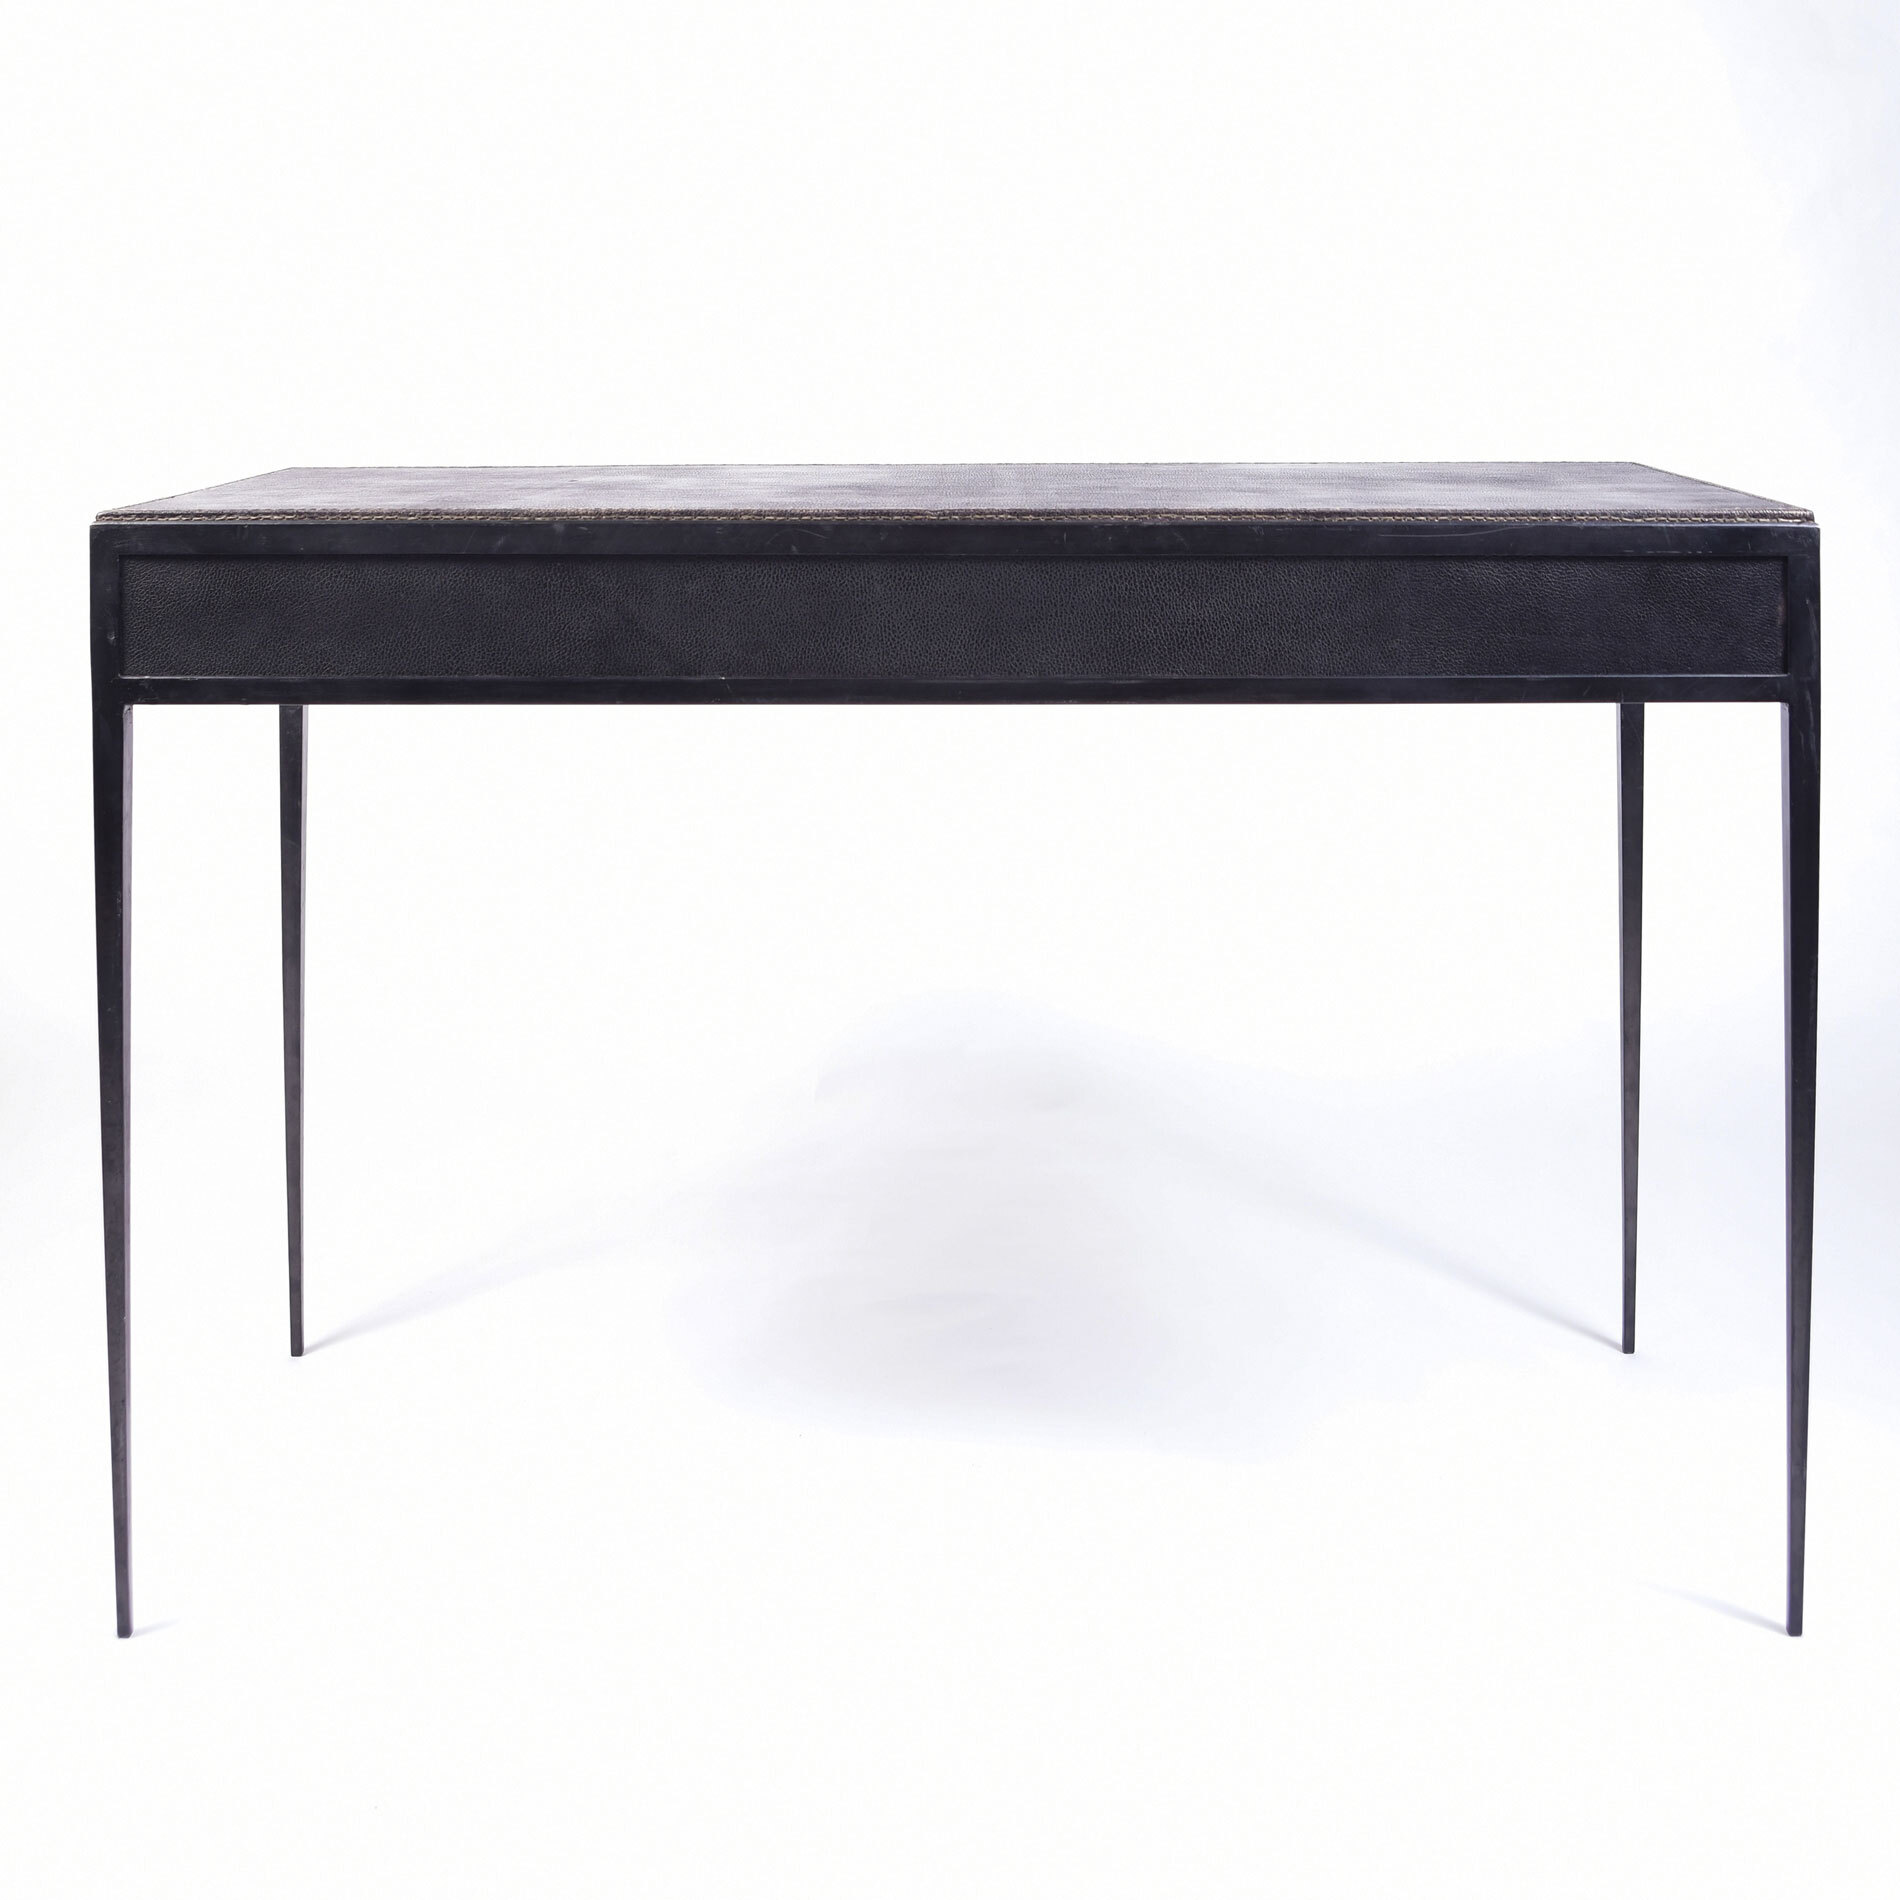 The image for Jmf Leather Desk 03